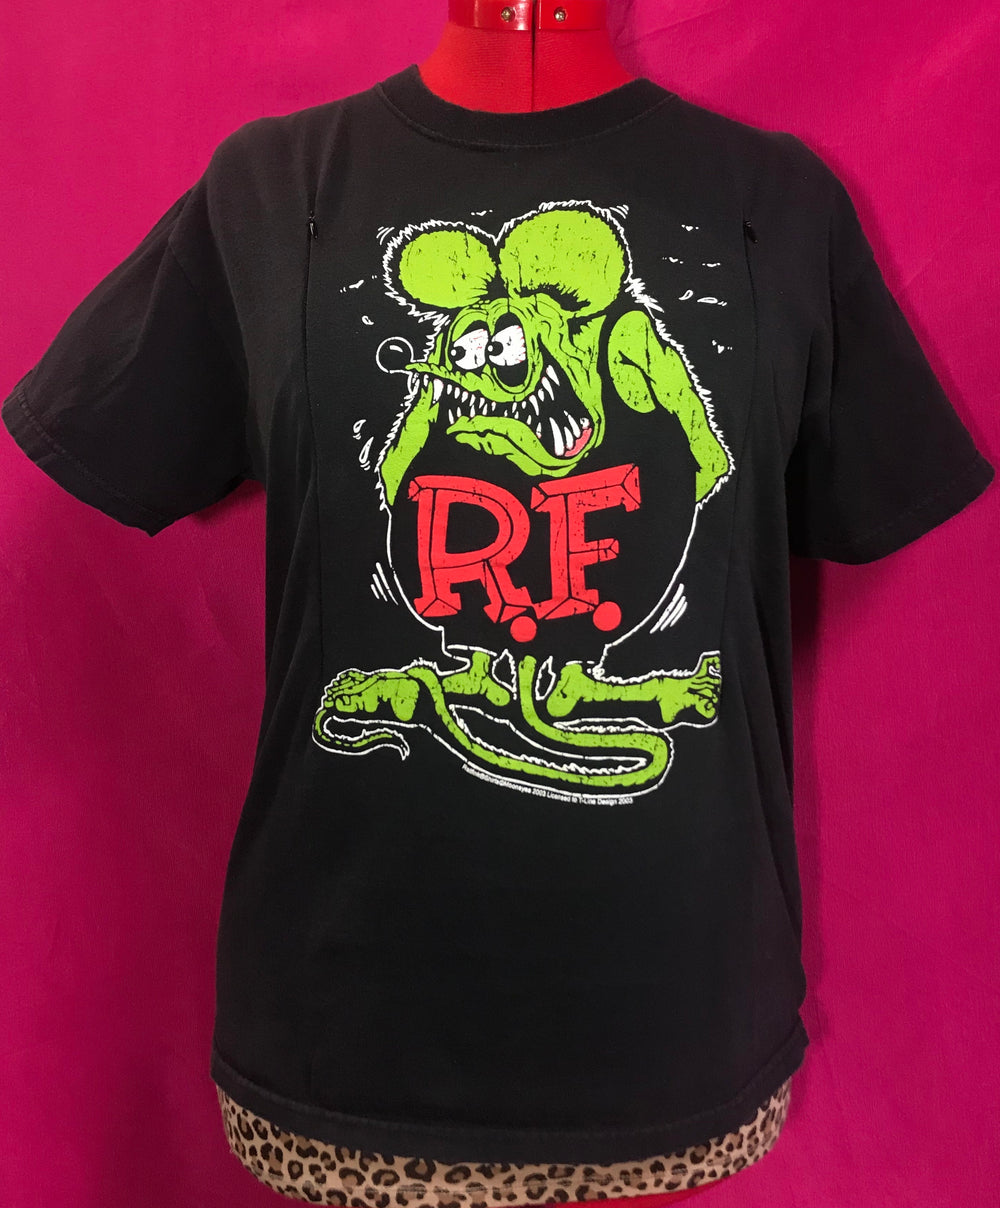 Rat Fink Breastfeeding Shirt (M)